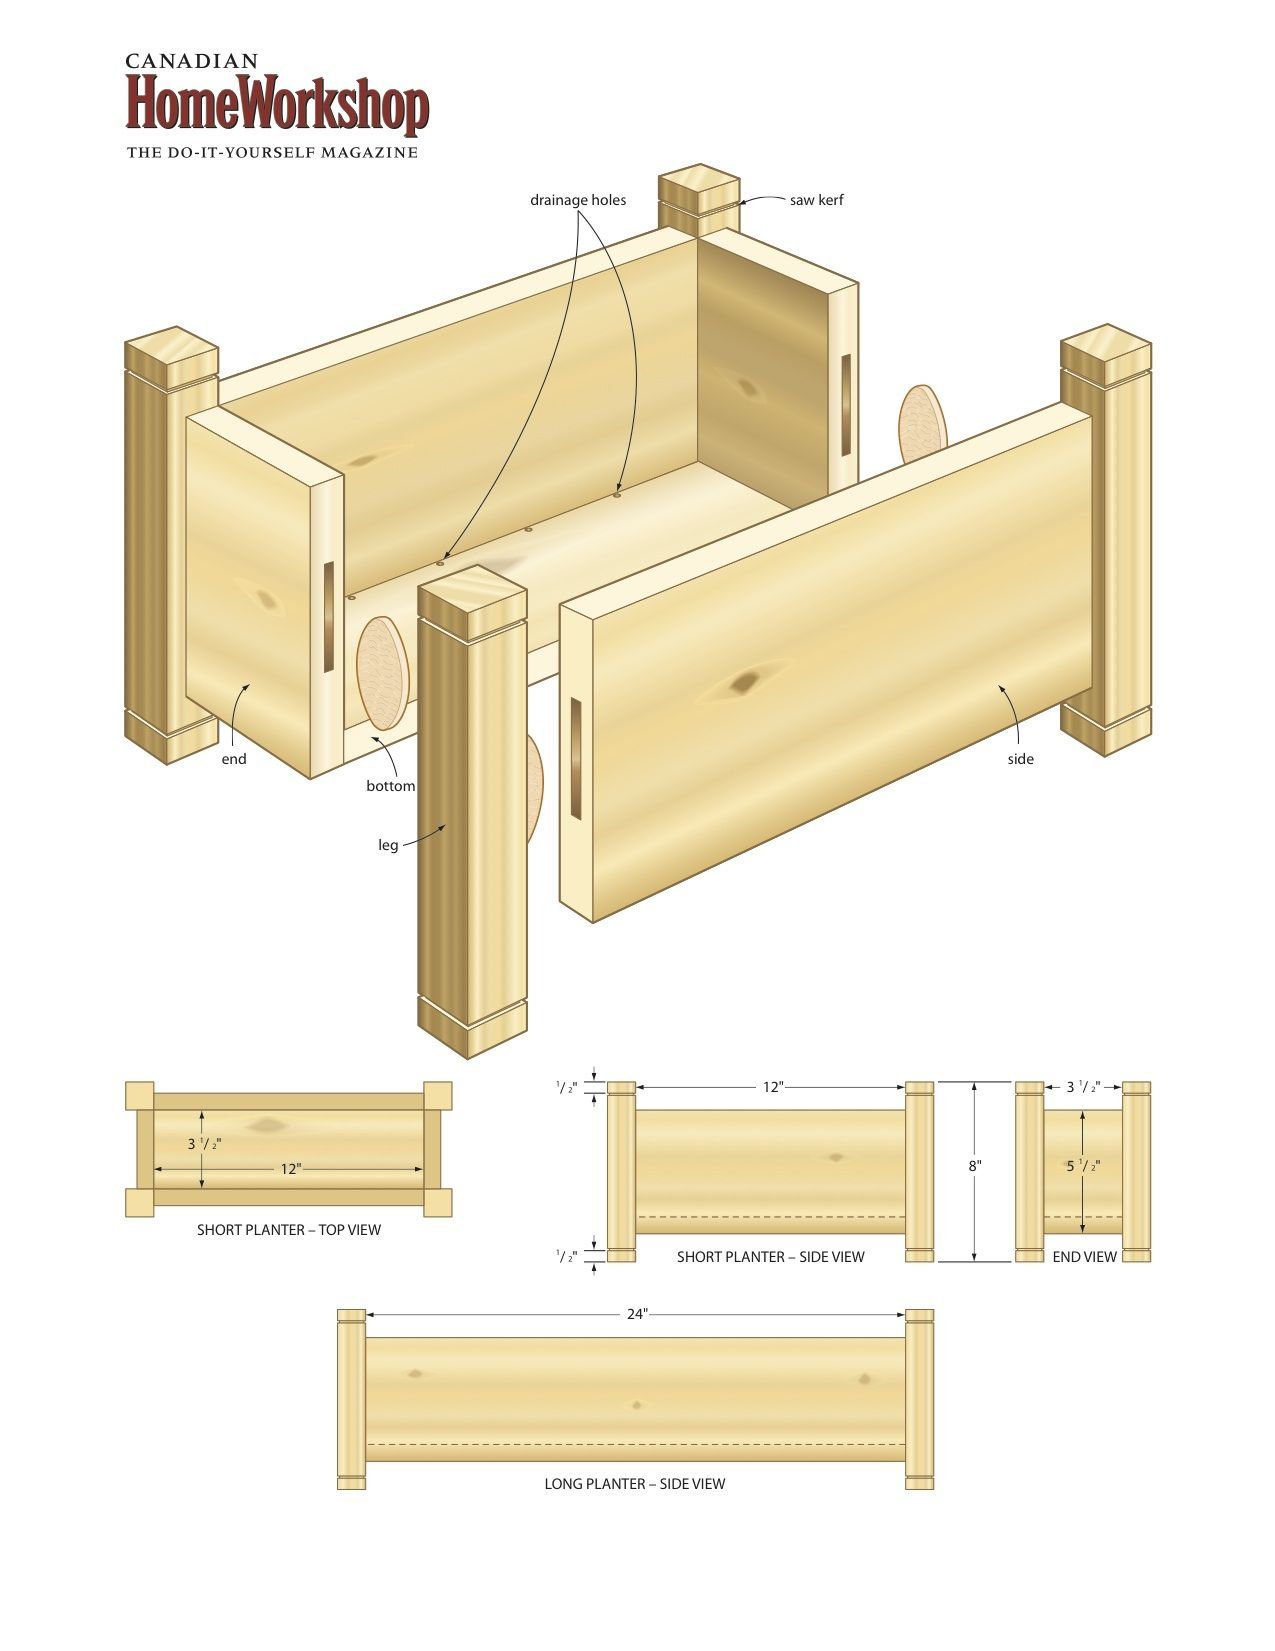 hight resolution of deck planter box part 2 canada homeworkshop i think it would need more support than just biscuting